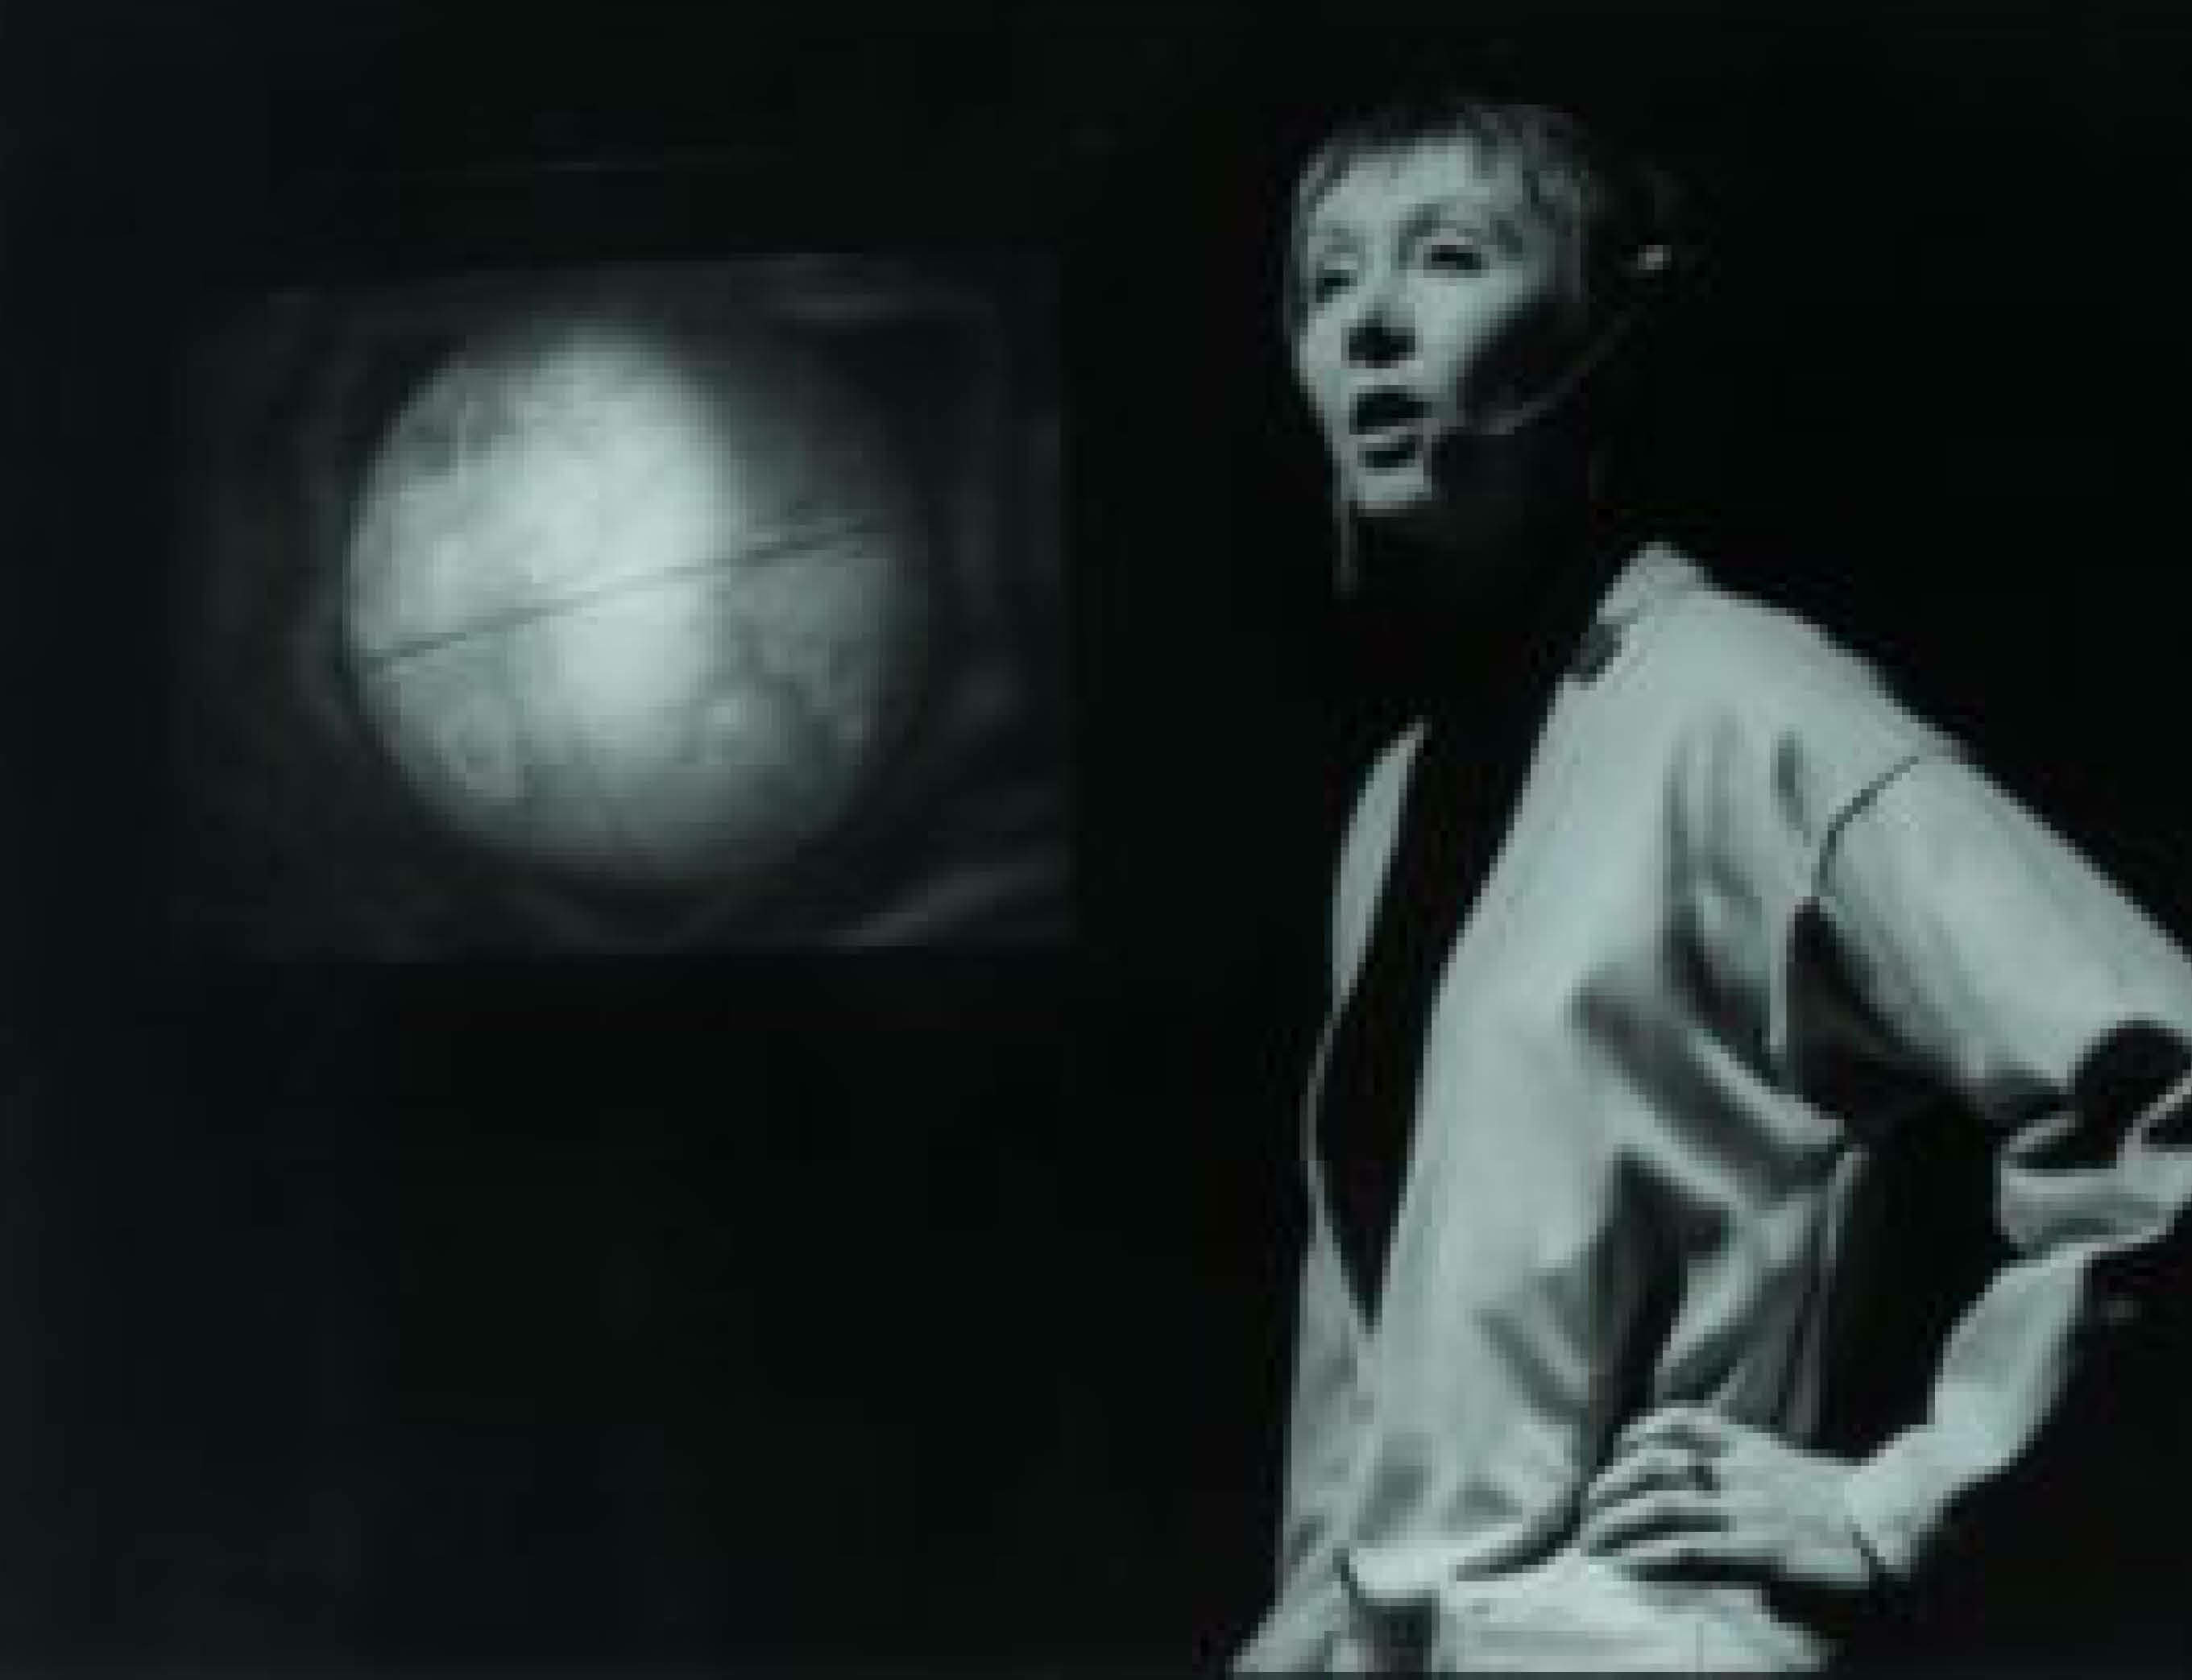 Tony Oursler restages 1980s performance at The Kitchen, New York